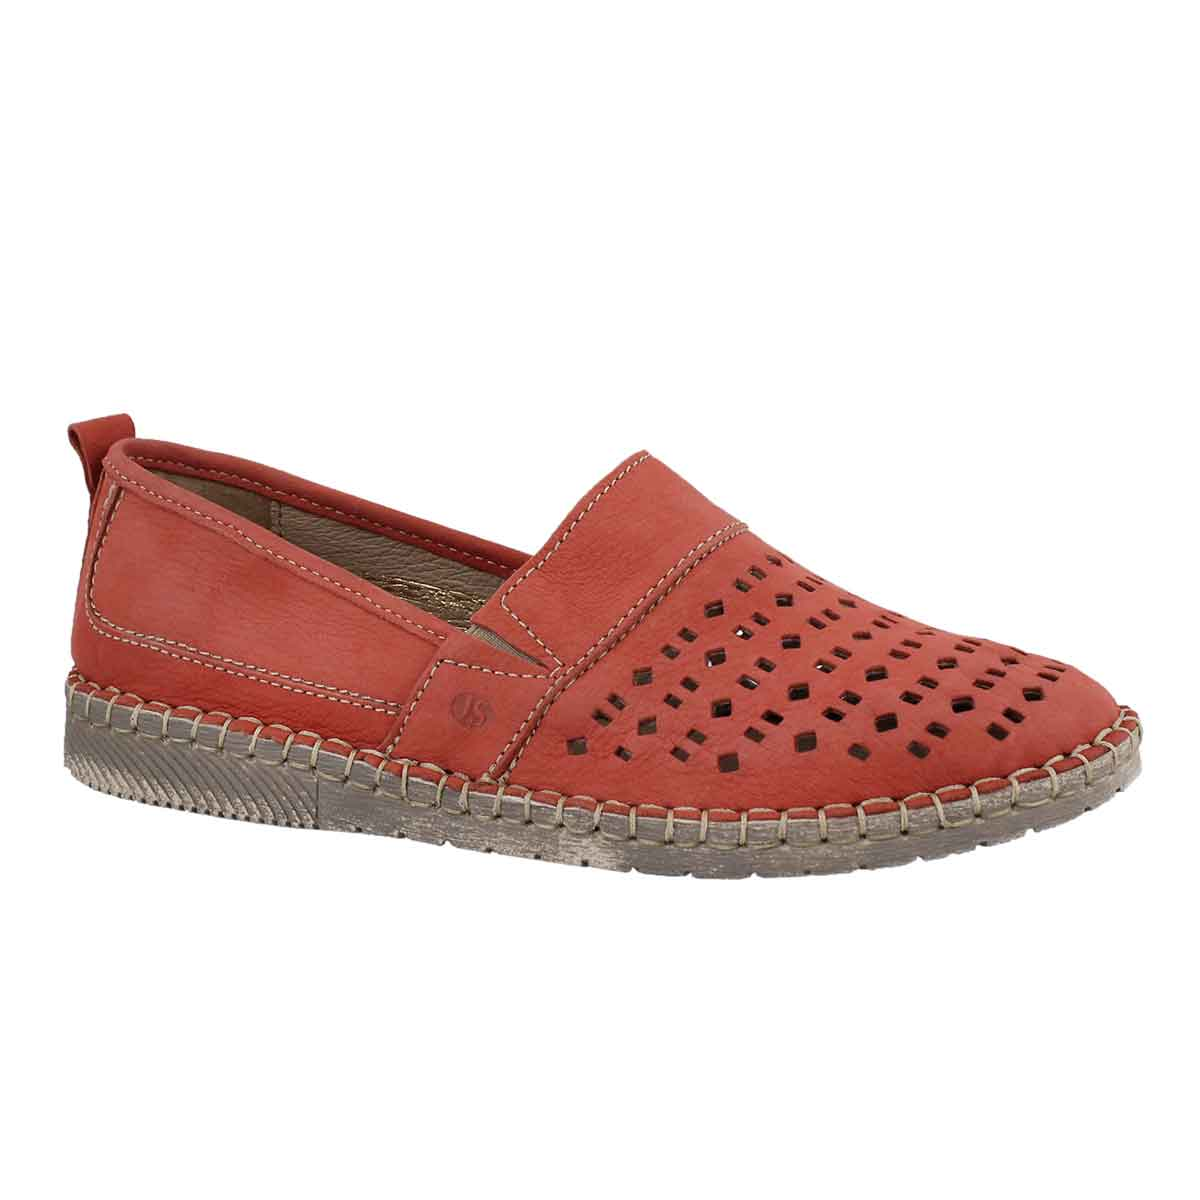 Women's SOFIE 27 red slip on shoes